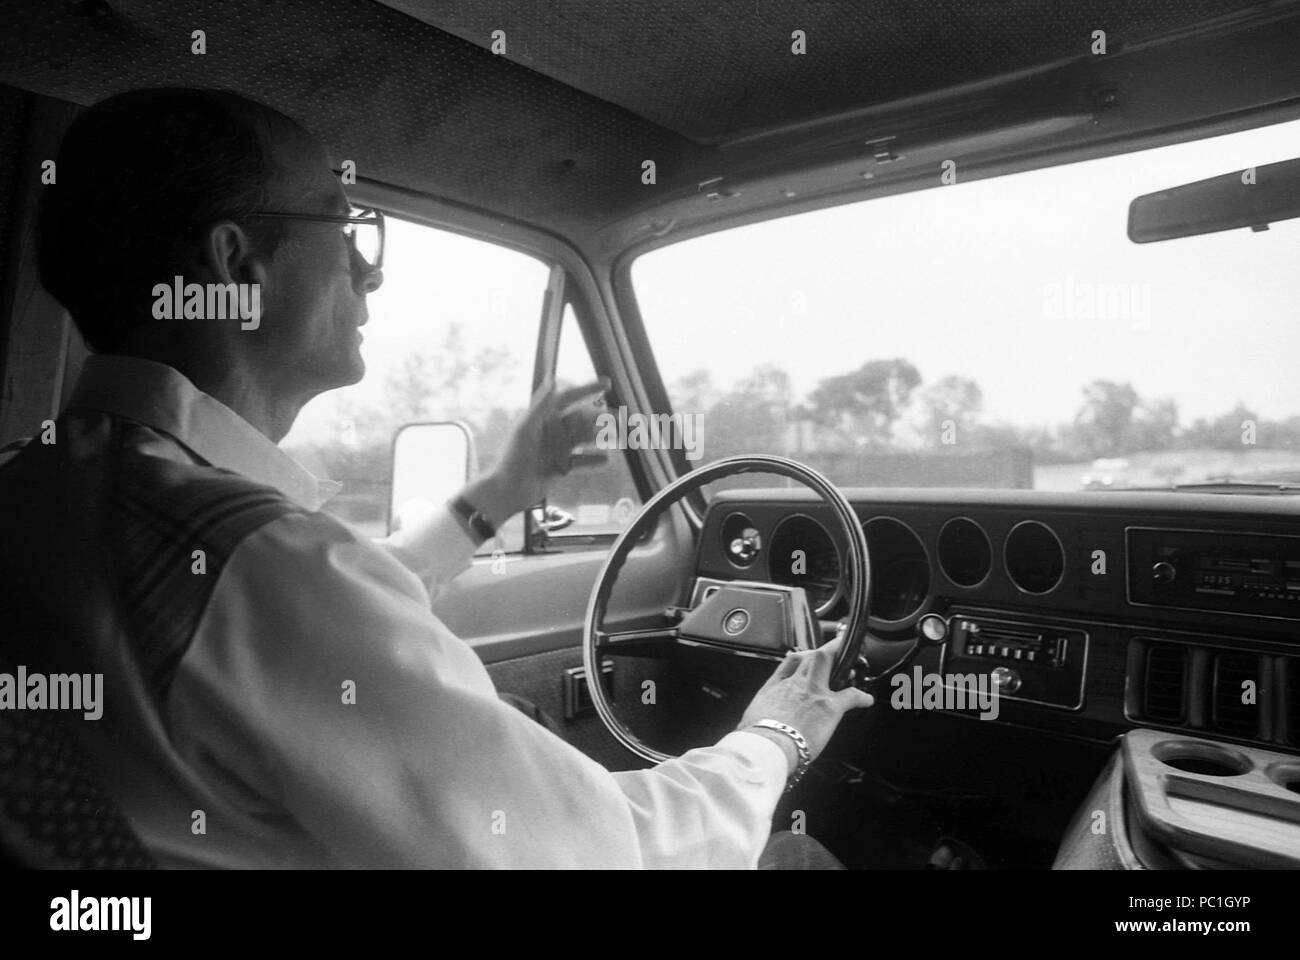 1980s Car Interior Stock Photos Images 1980 Ford Custom Man Driving An Automobile In Los Angeles 1984 Image